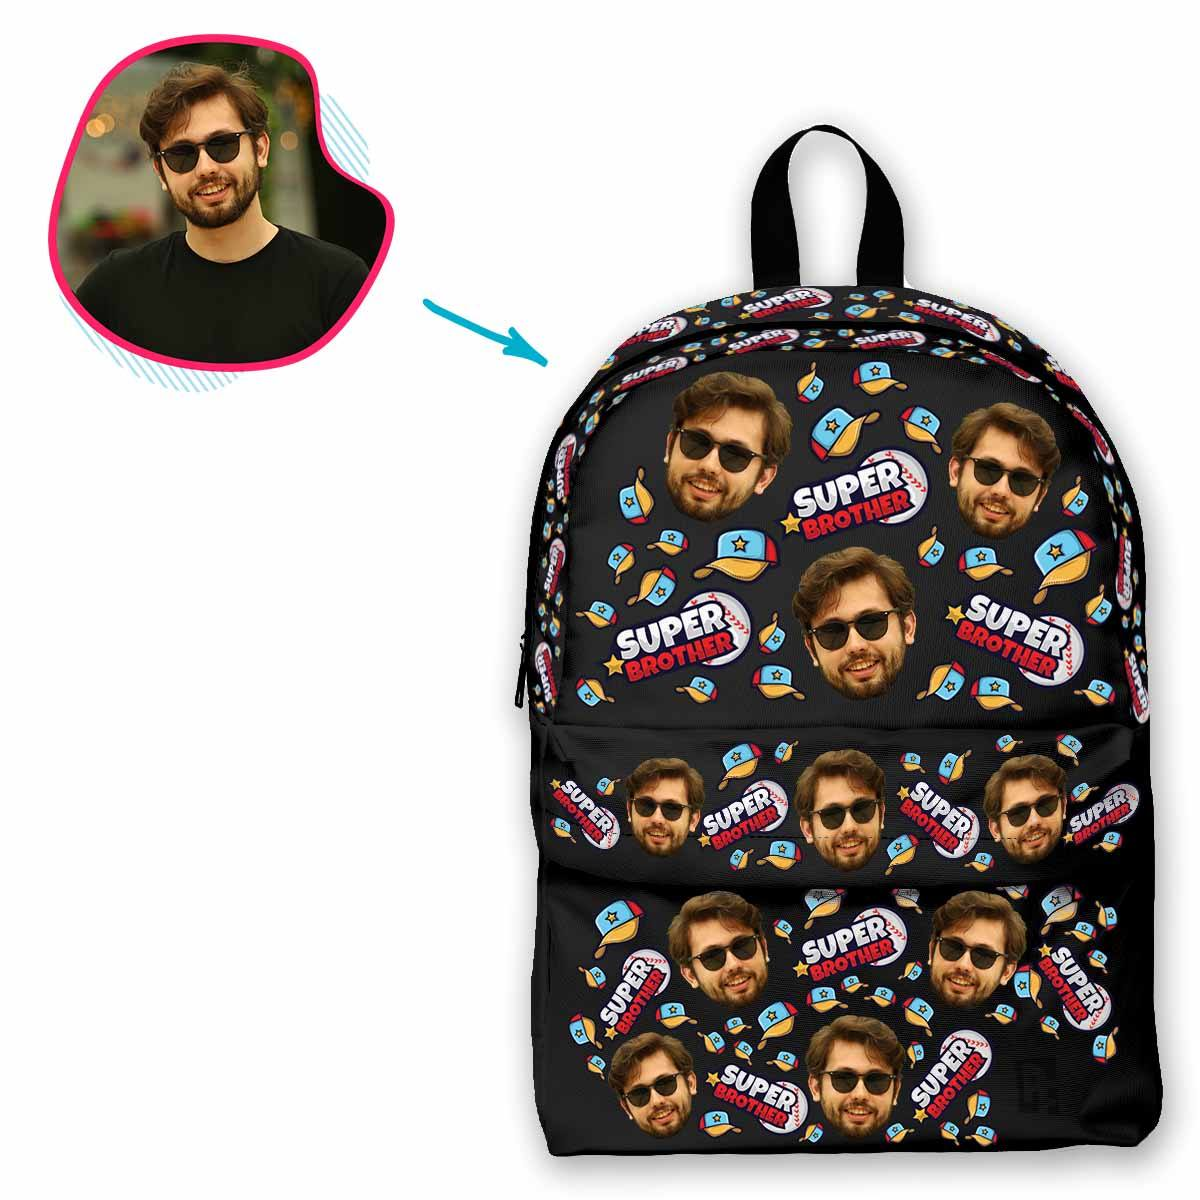 dark Super Brother classic backpack personalized with photo of face printed on it